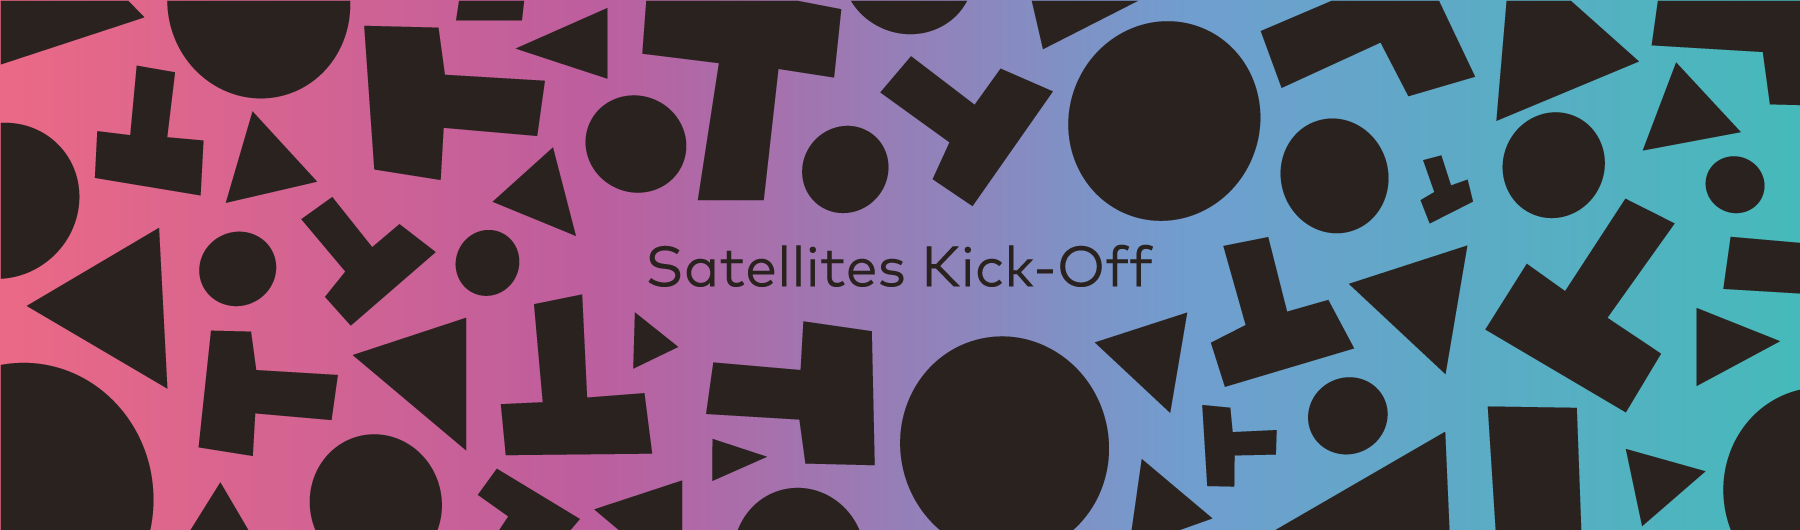 Your Exclusive Invite to... The TOA19 Satellites Launch!